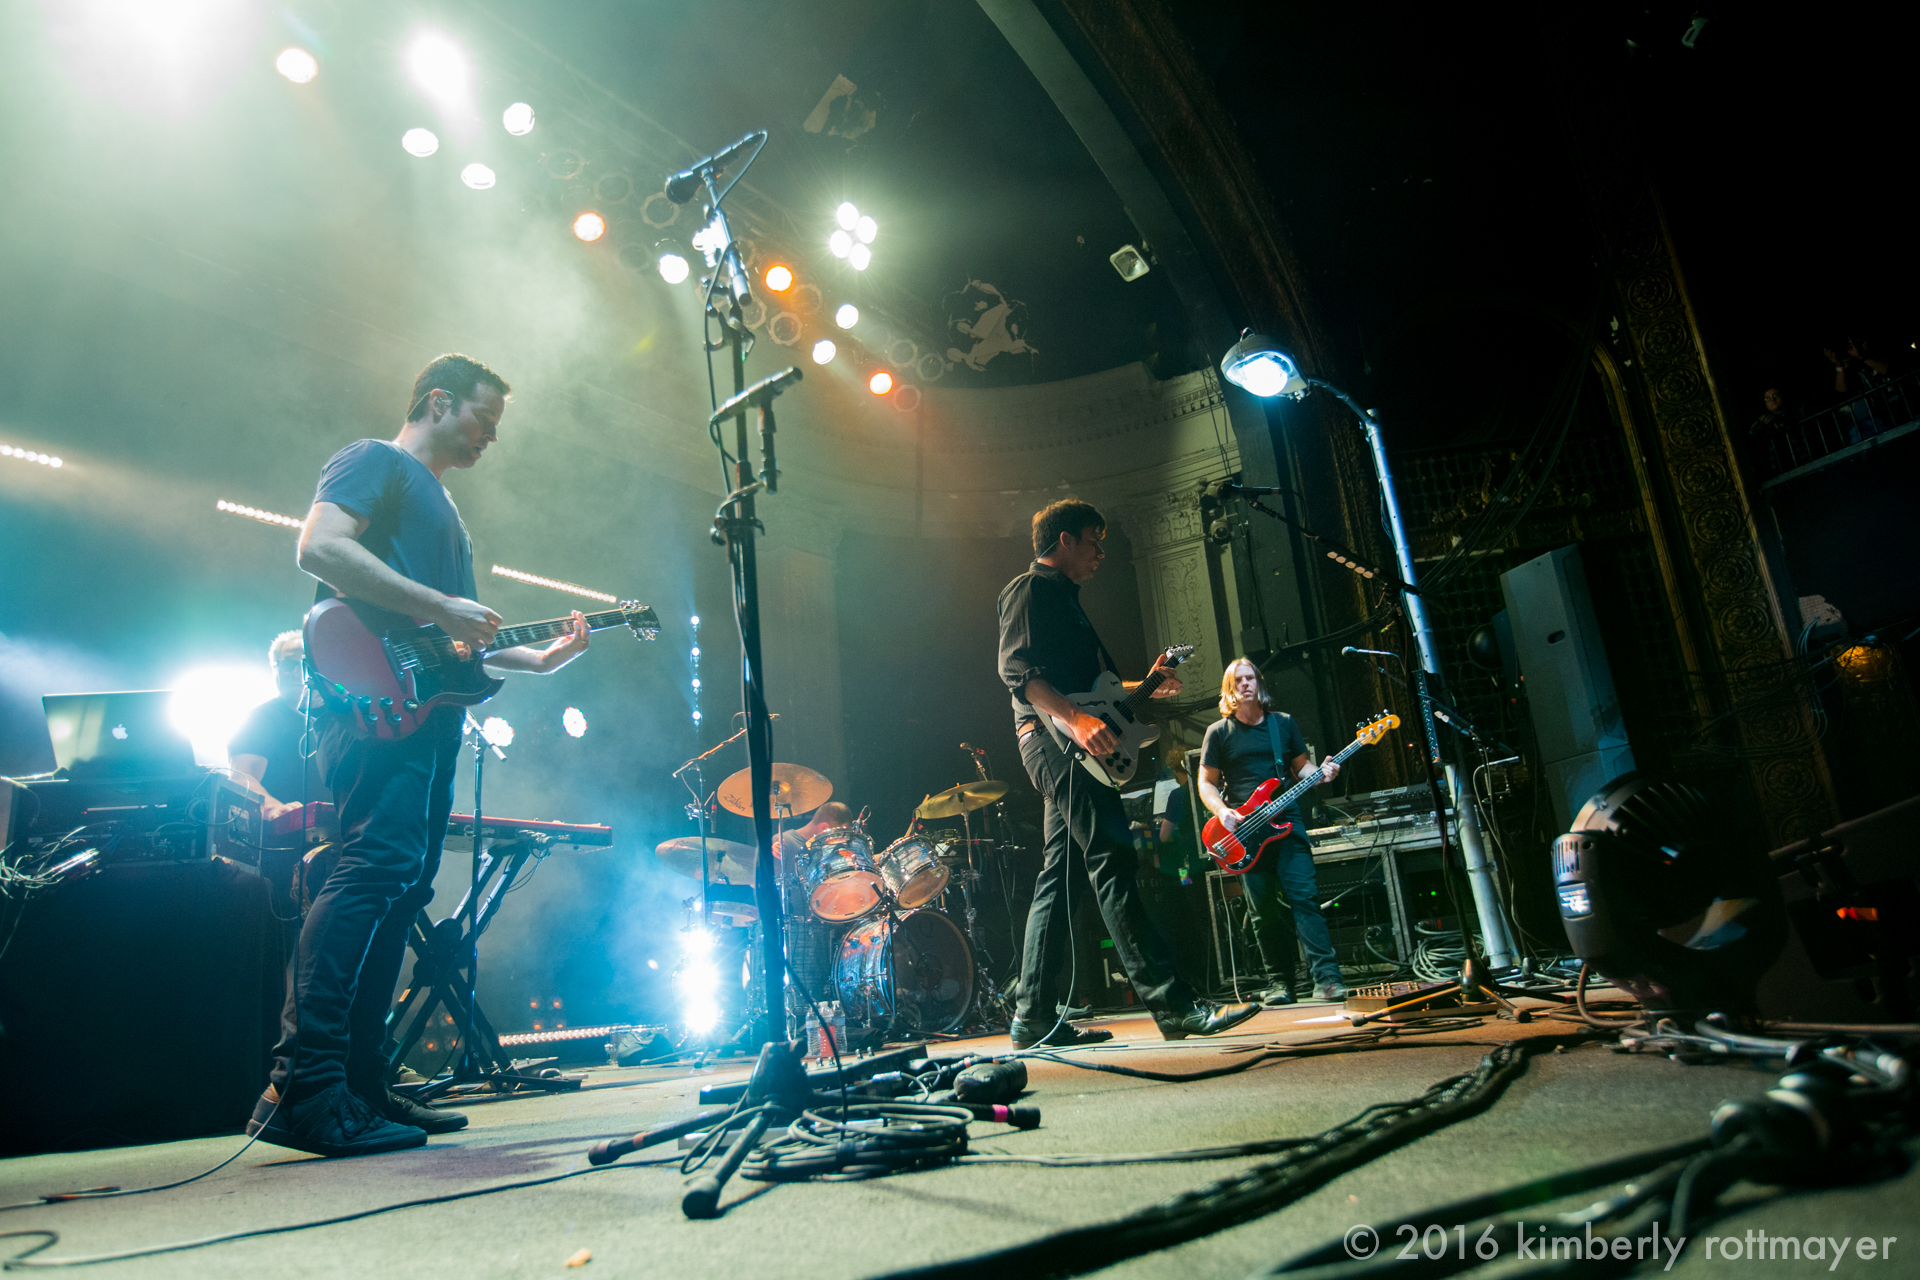 ptl_0033_jimmyeatworld_web